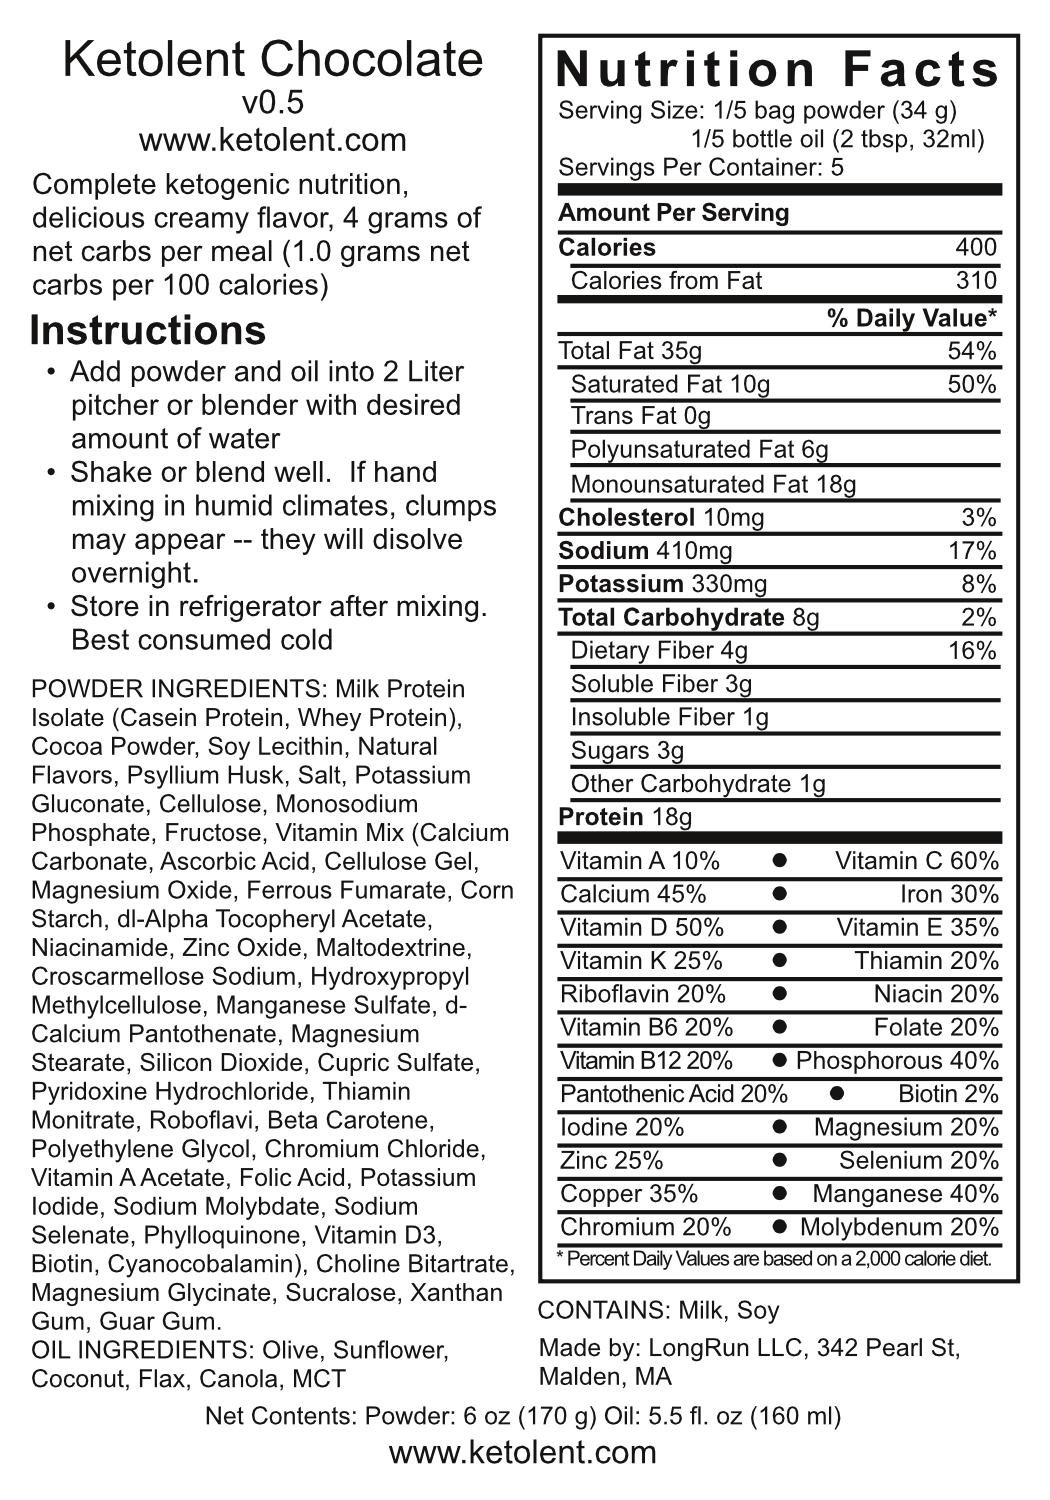 Amazon.com : Ketolent nutritionally complete ketogenic low carb ...